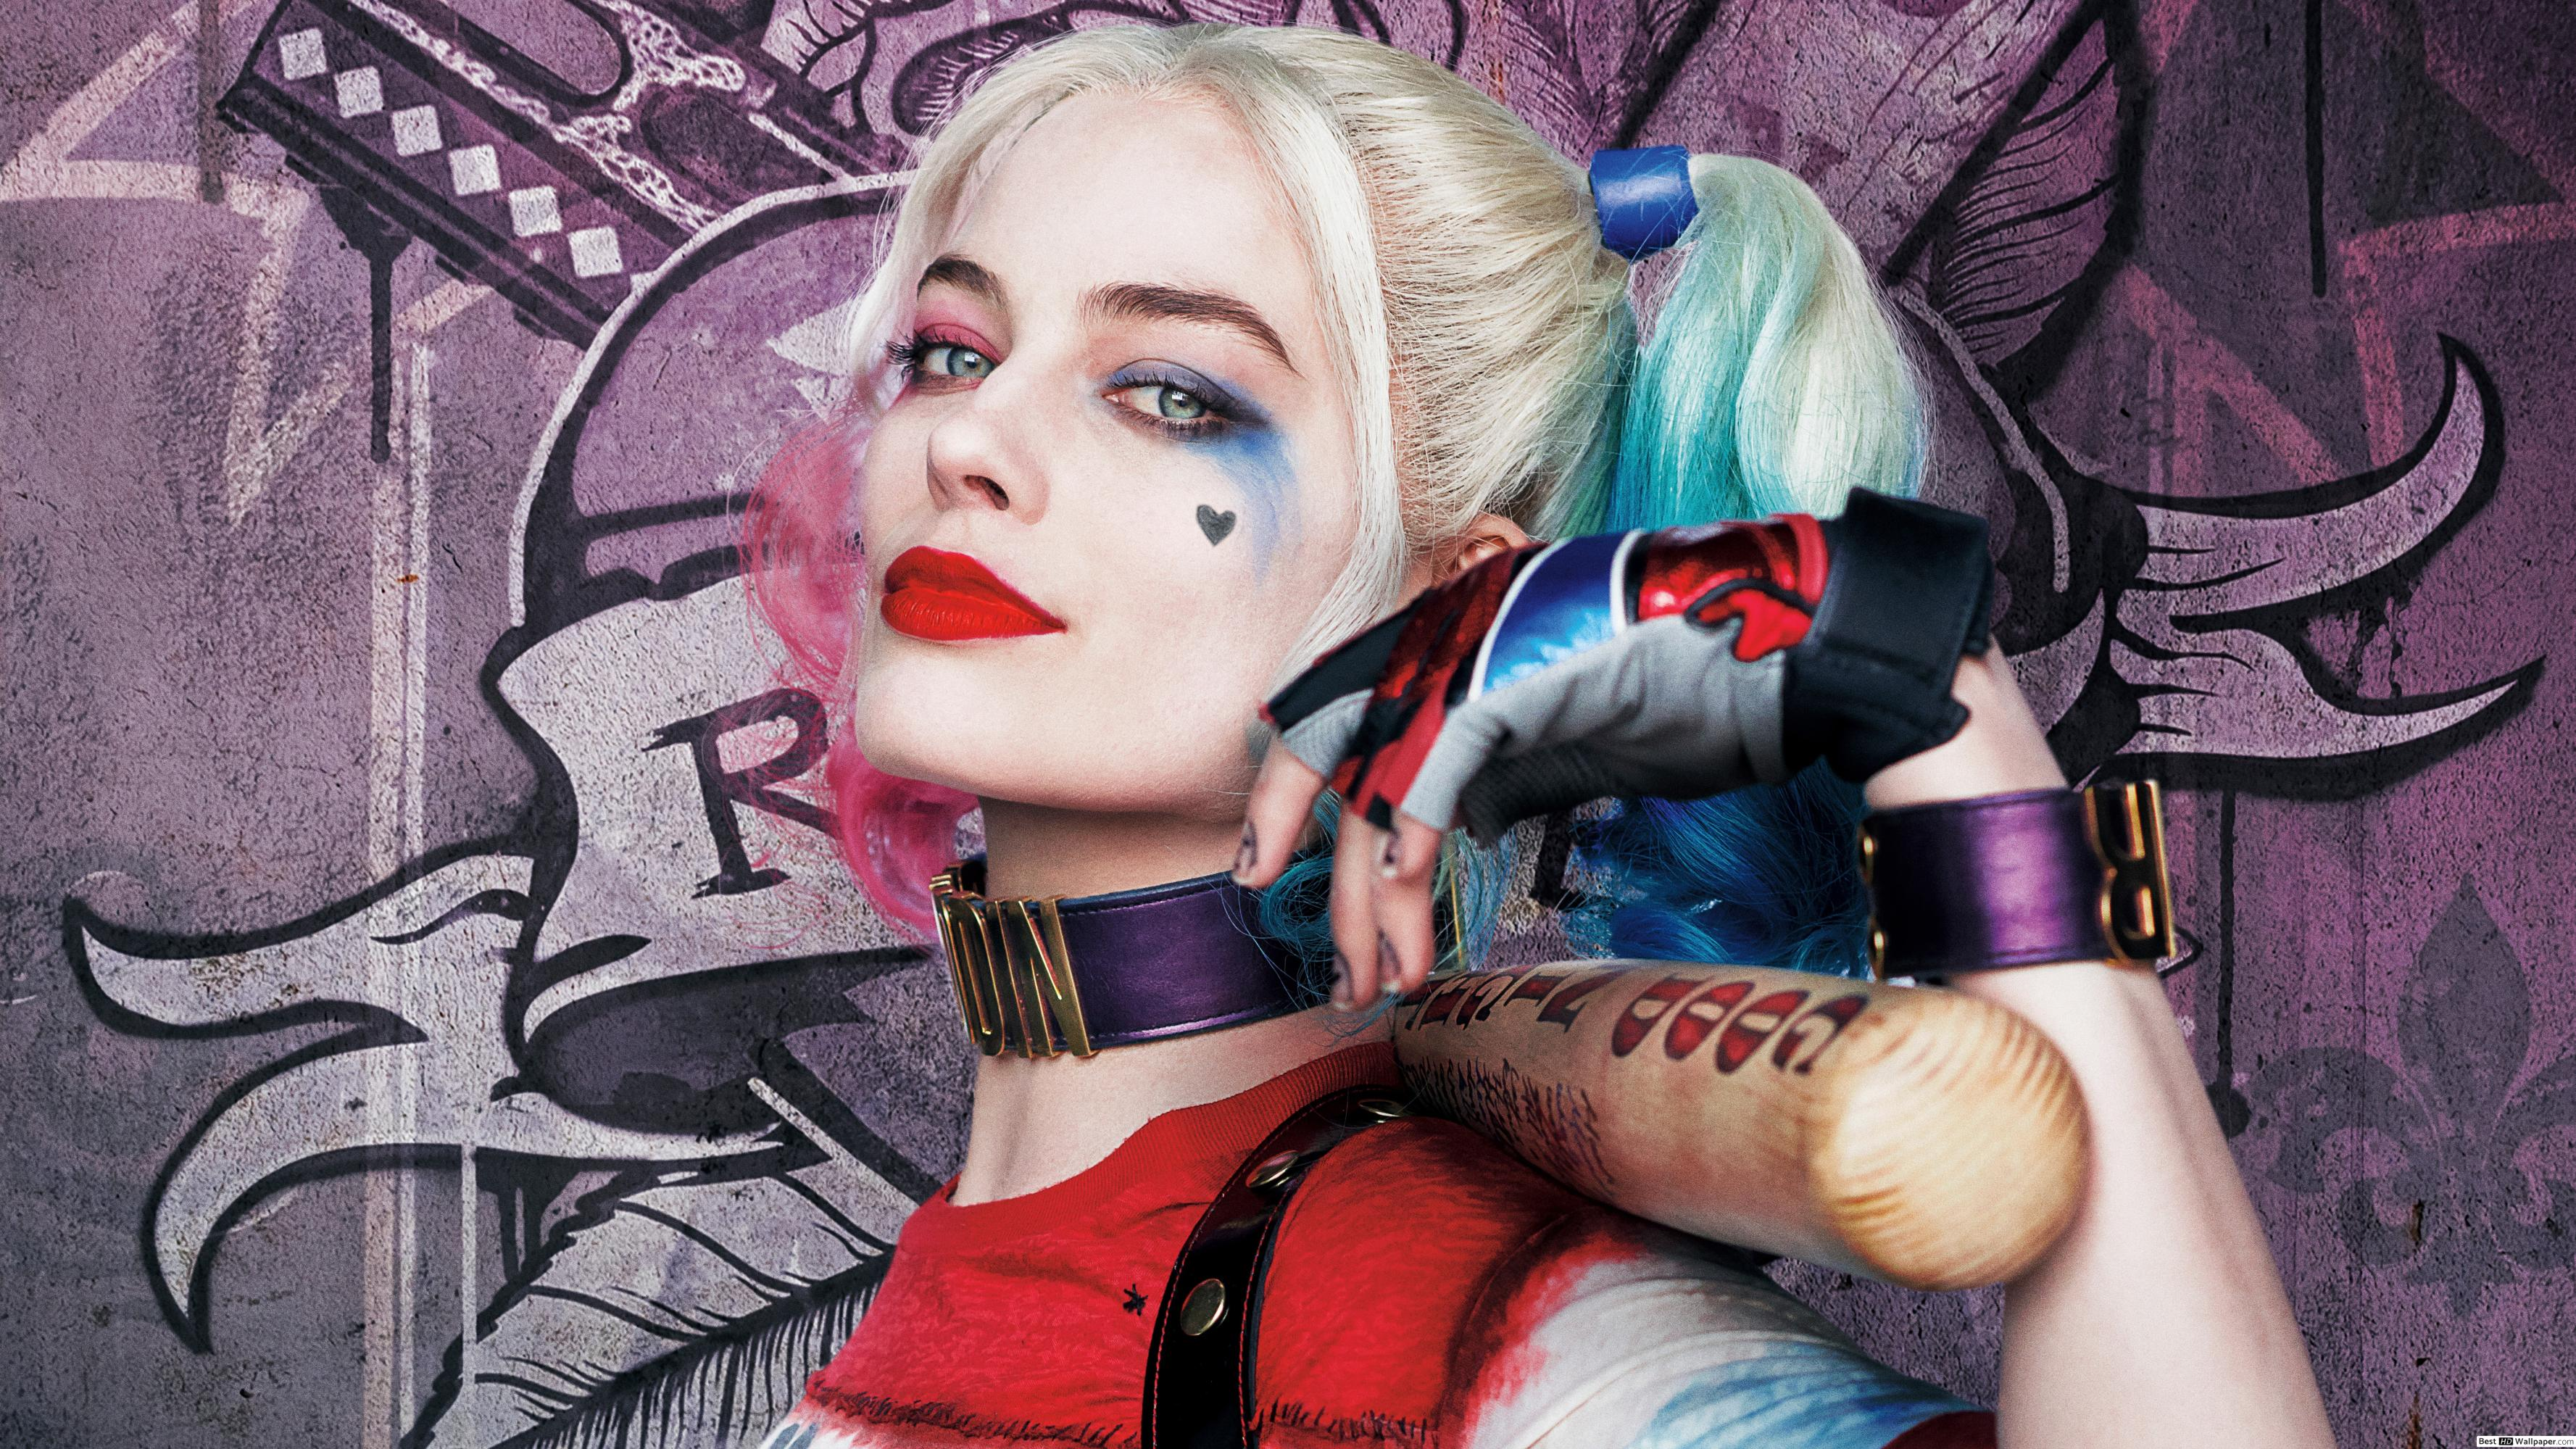 3554x1999 Suicide squad - Harley Quinn HD wallpaper download